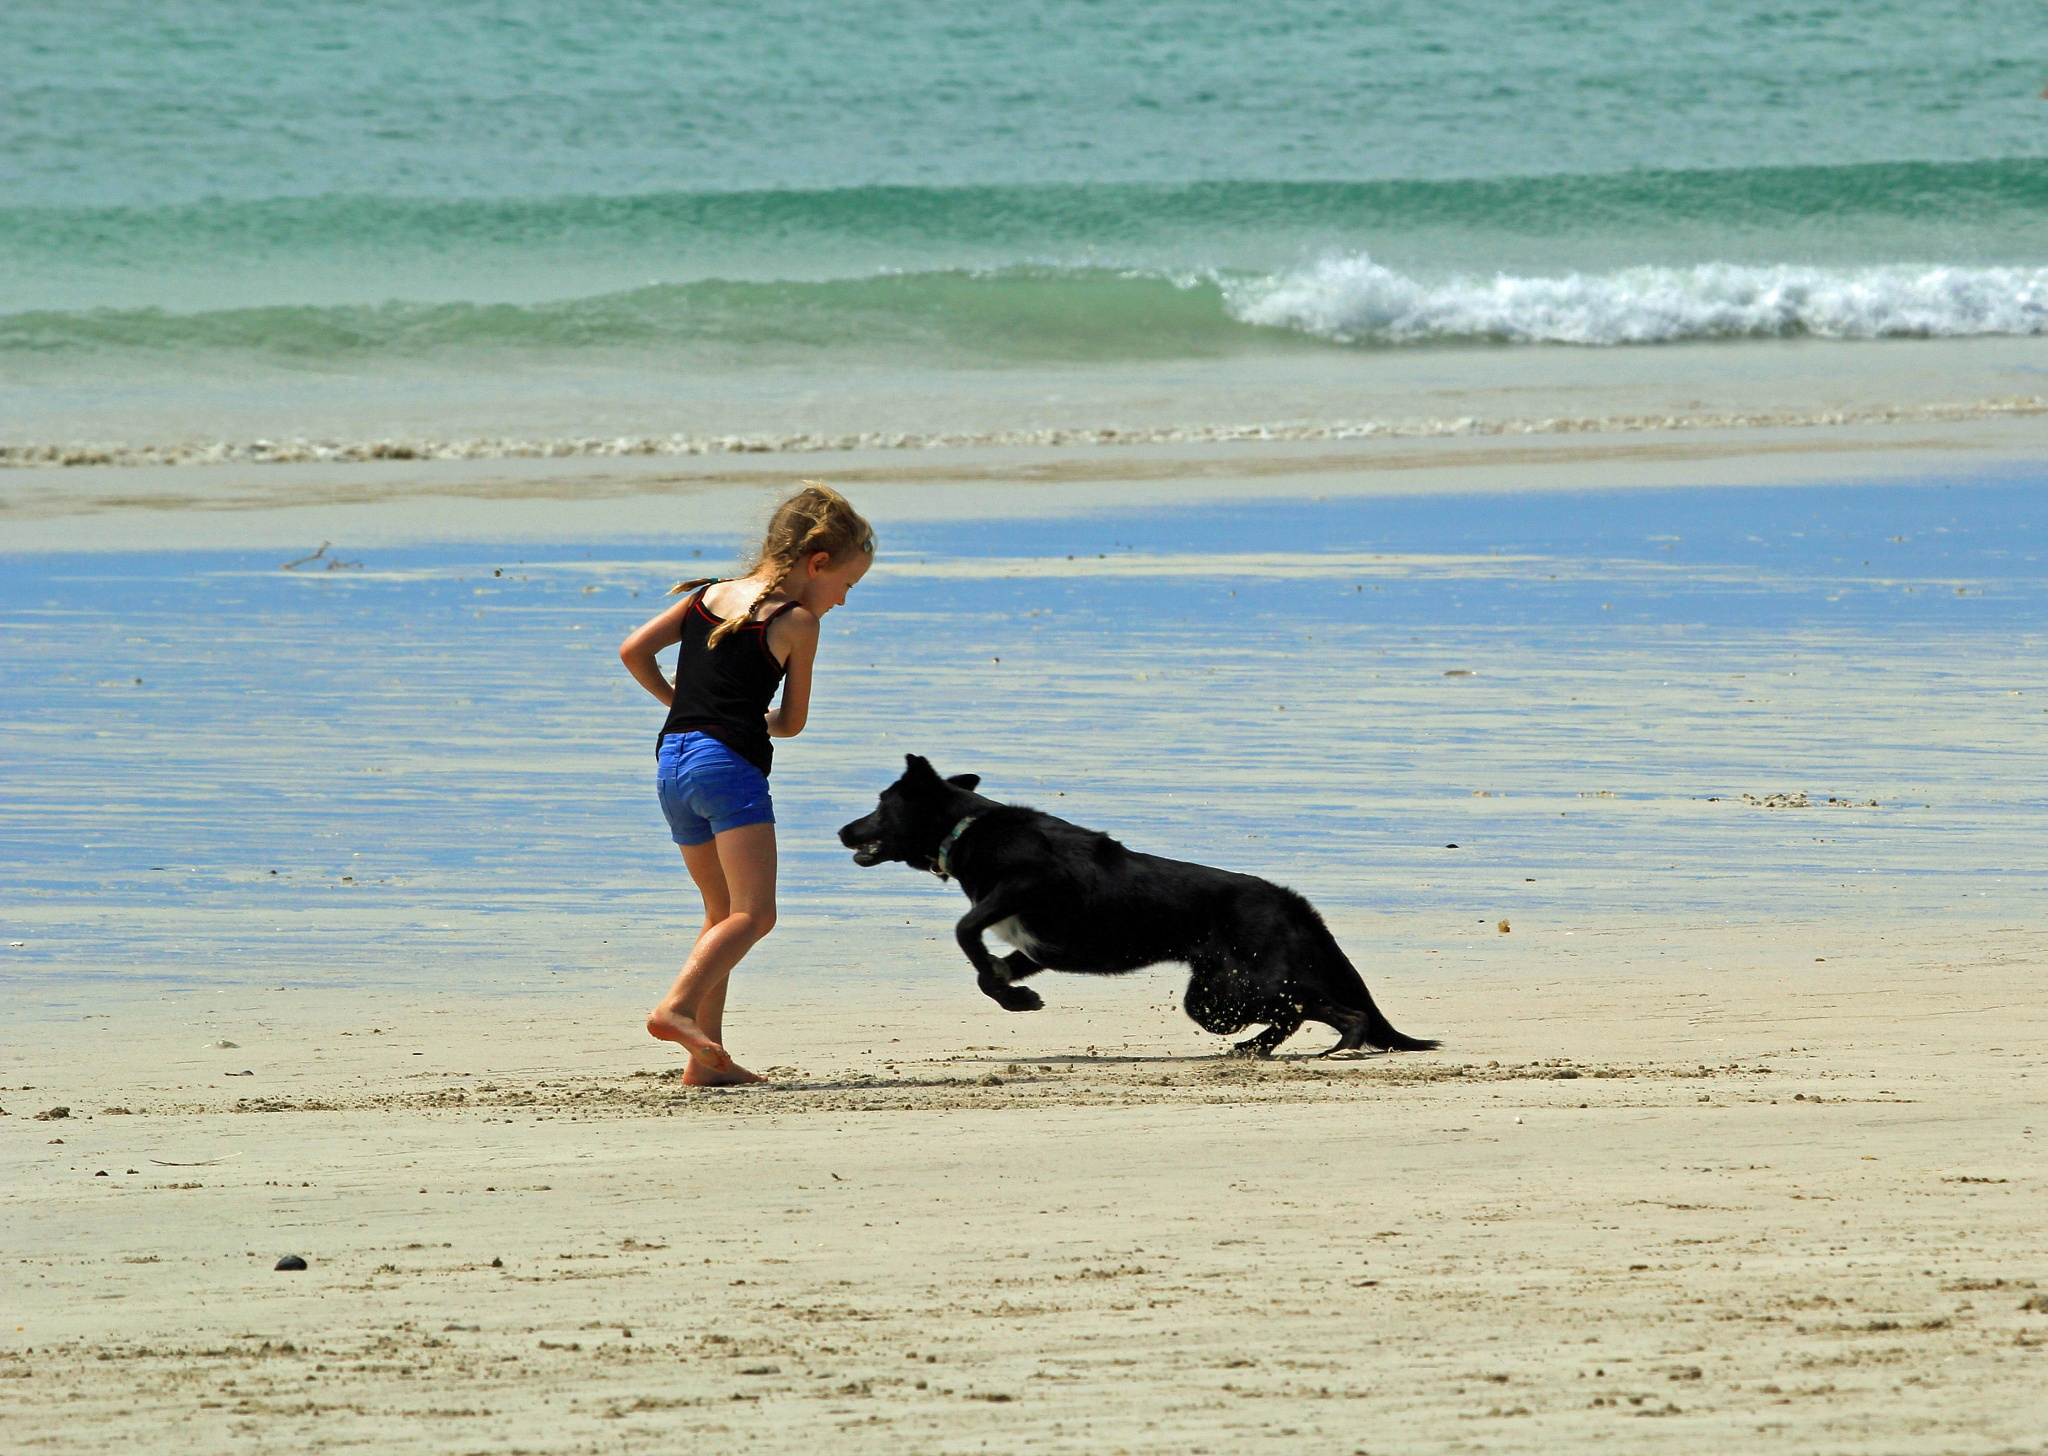 And fetch again by Nauta Piscatorque